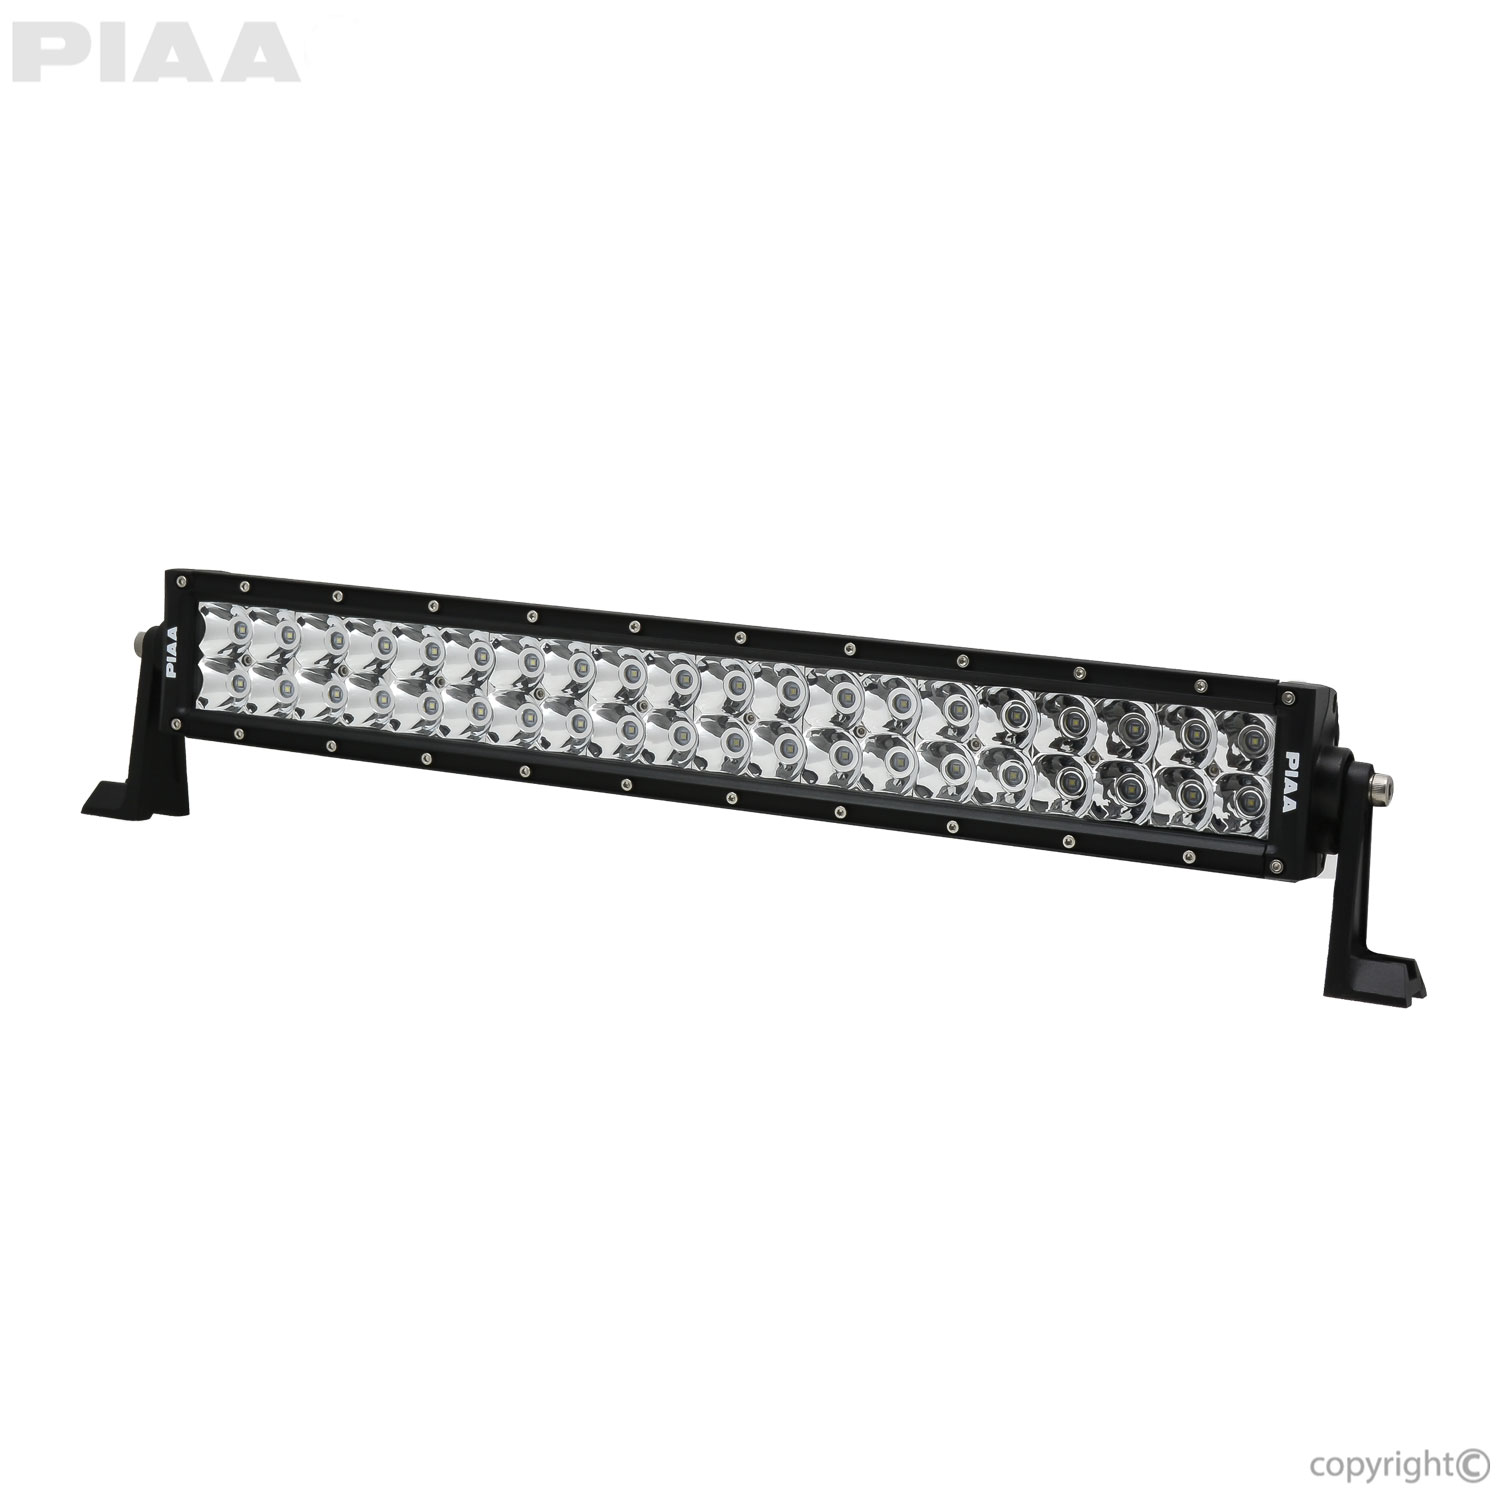 PIAA Quad 12 LED Combo Light